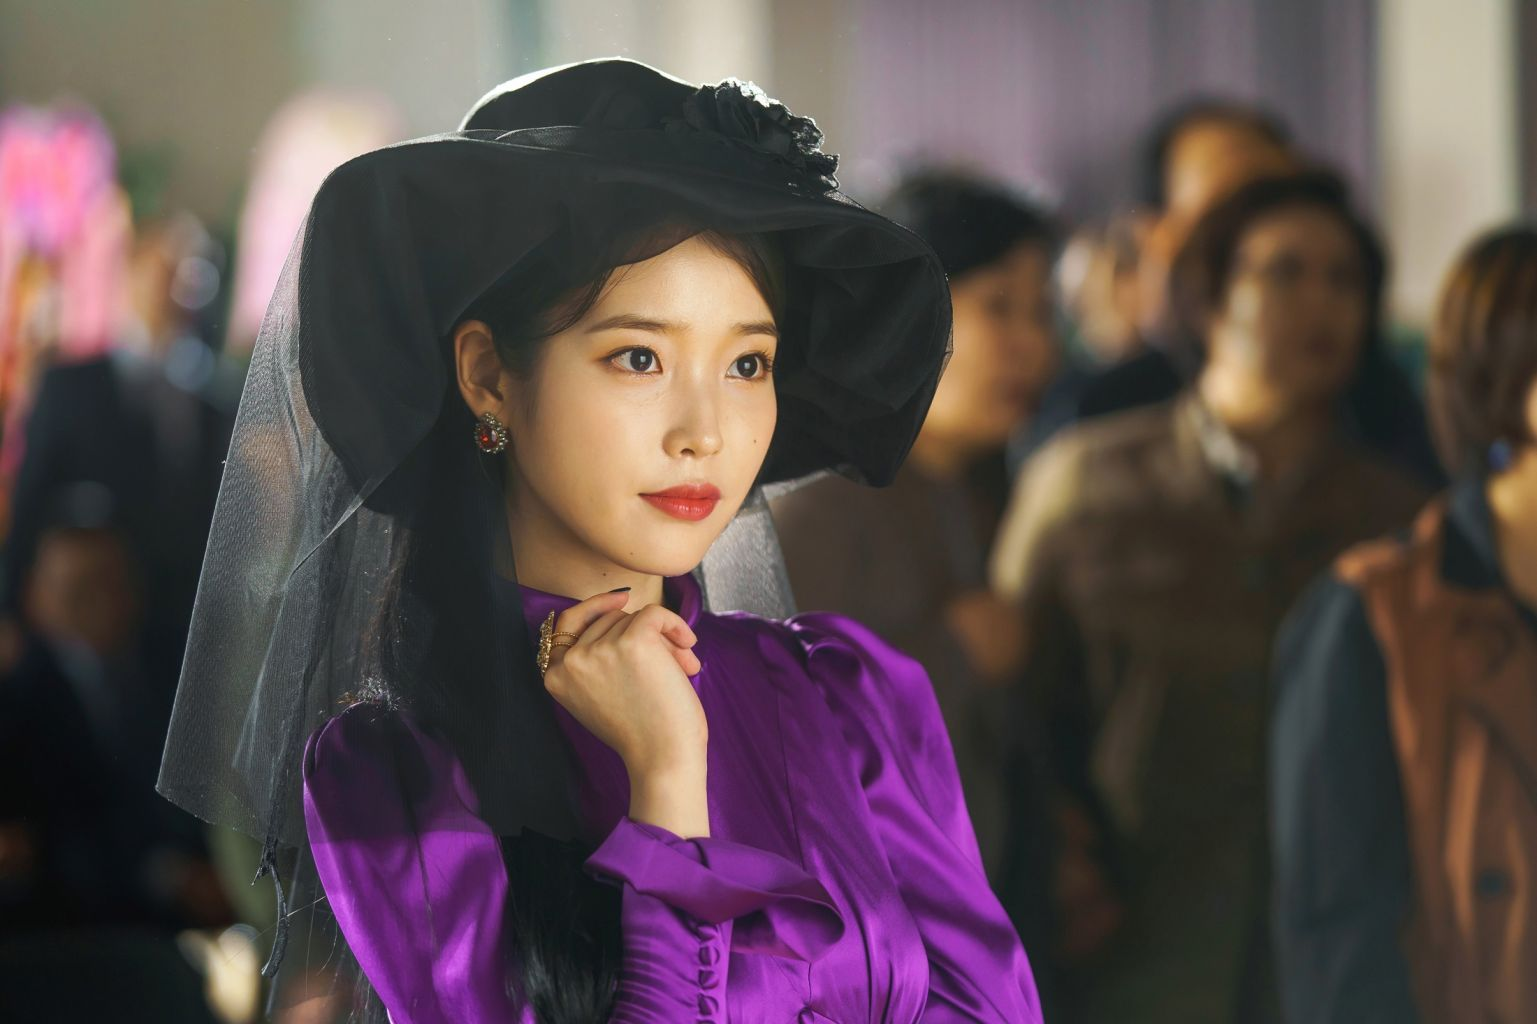 """IU emits video game heroine vibes for this look in """"Hotel del Luna"""" (Photo: tvN)"""